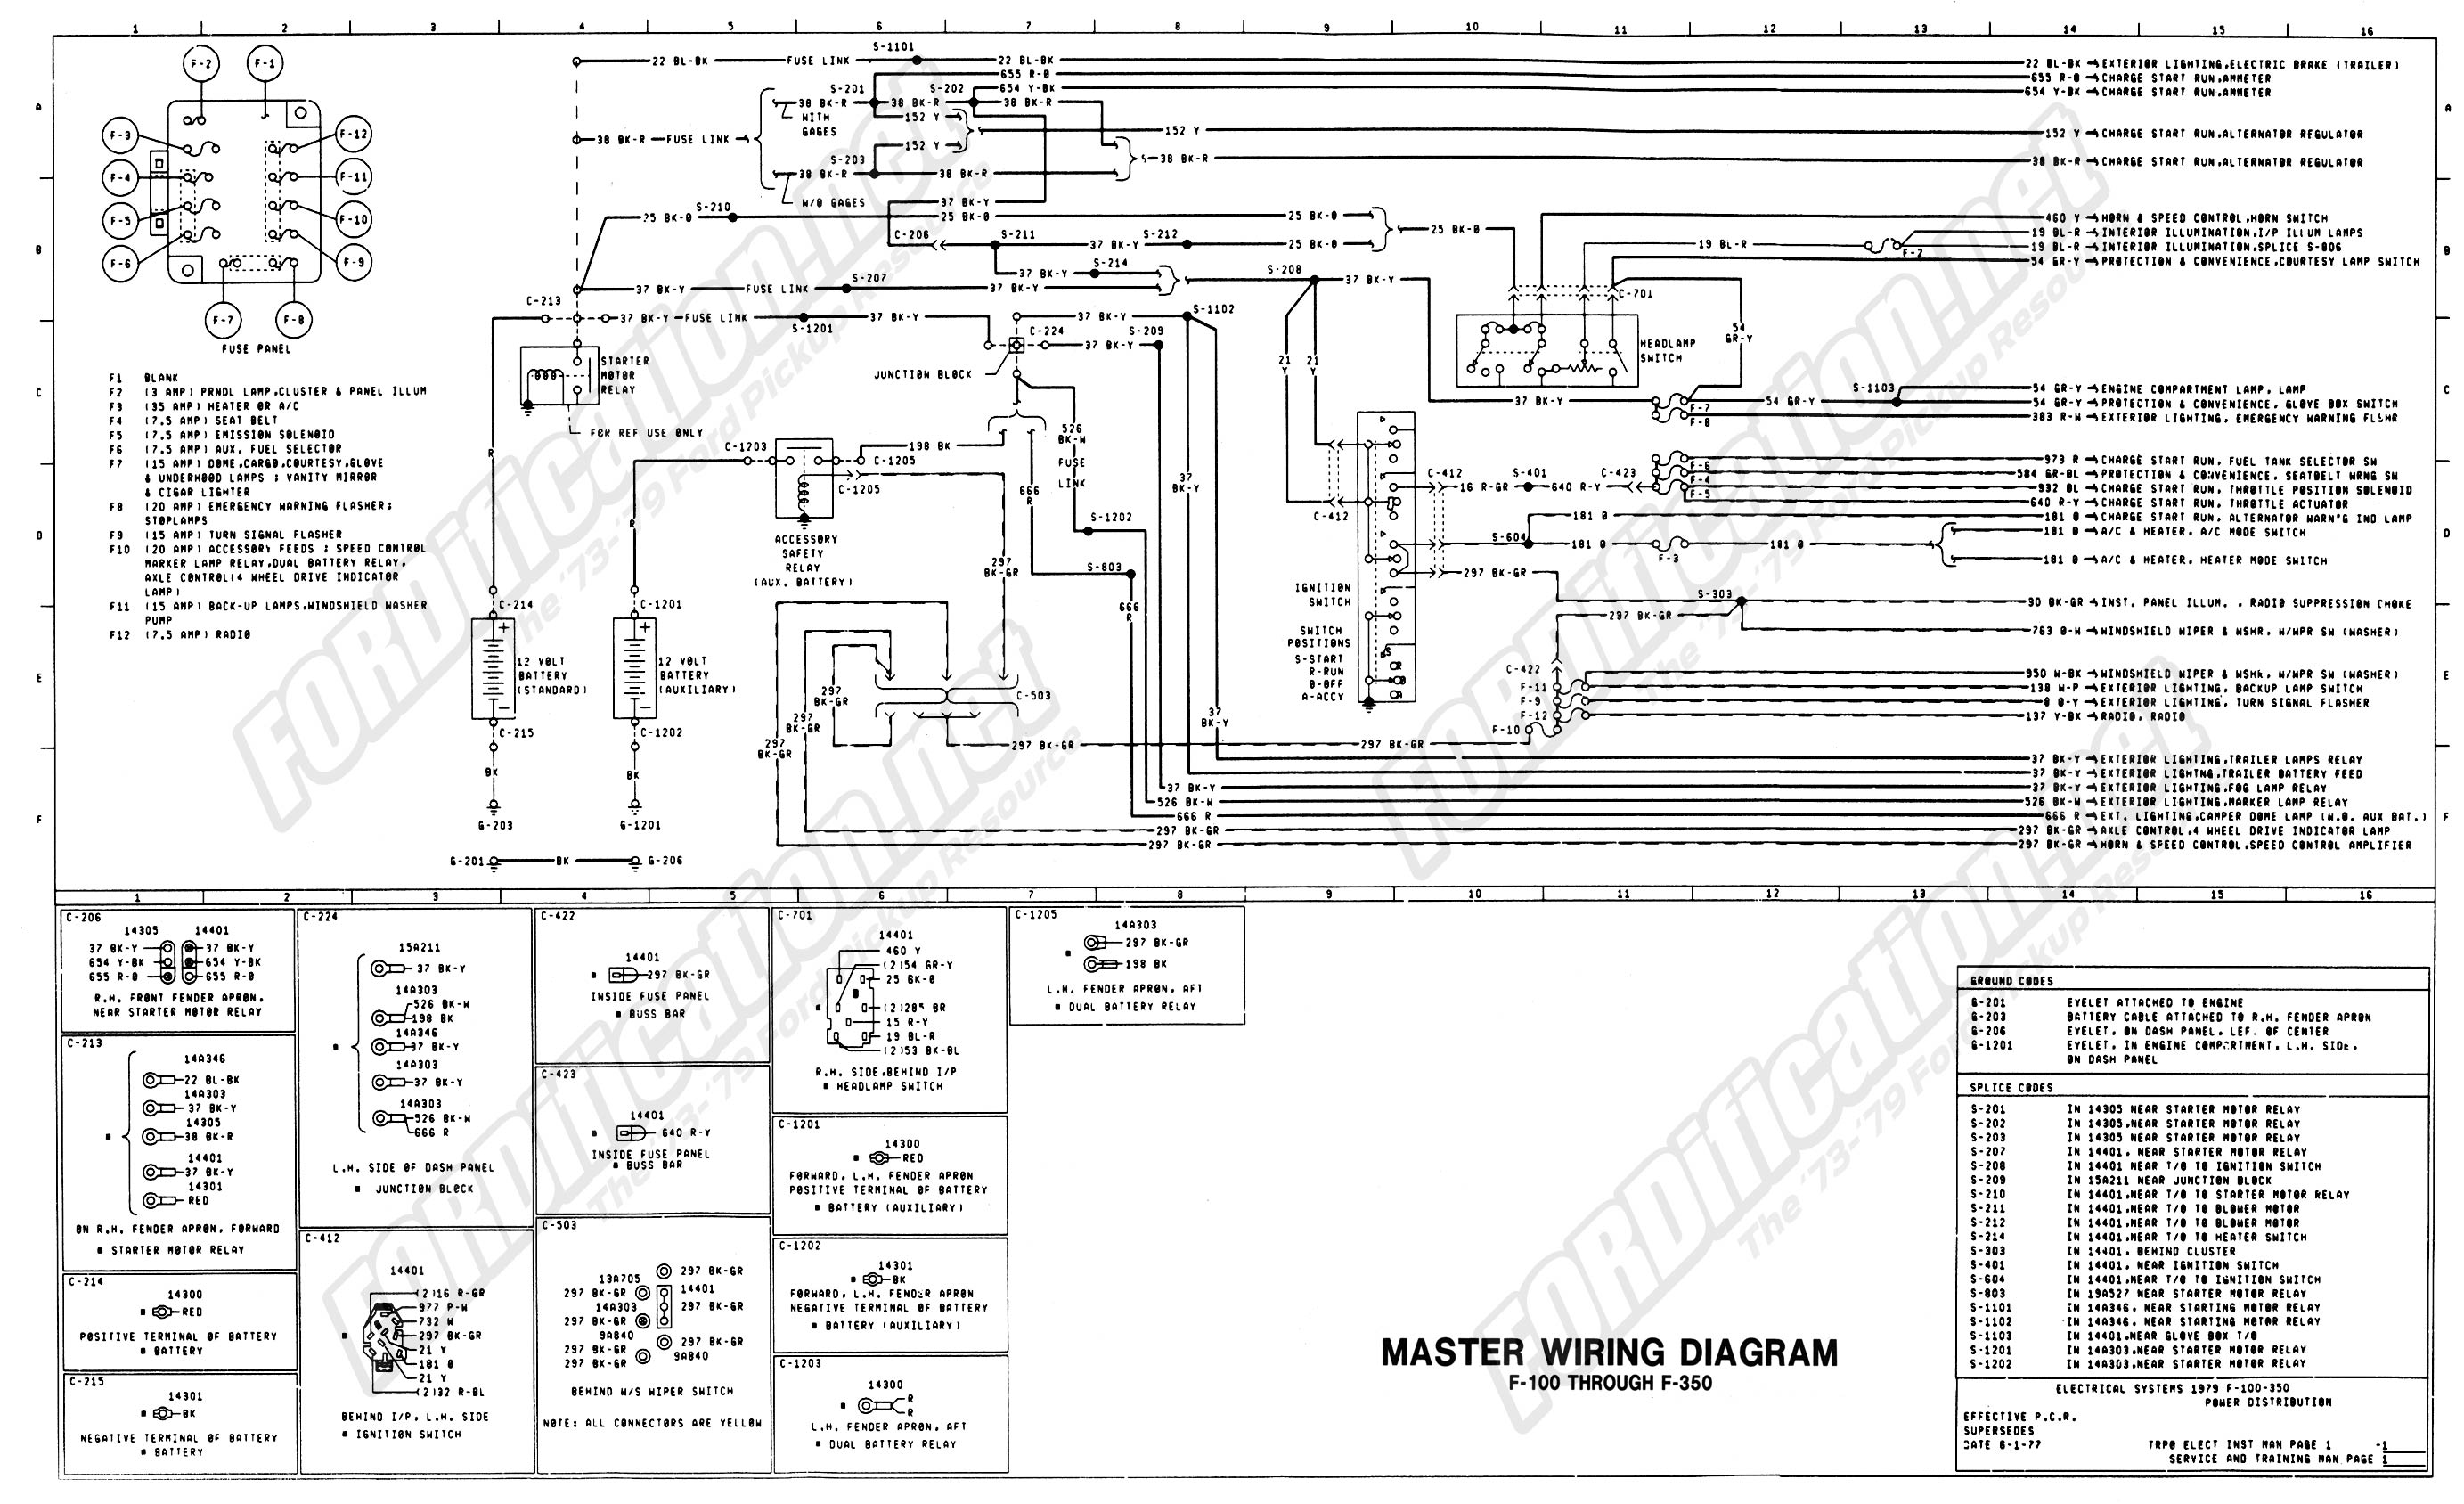 wiring_79master_1of9 1973 1979 ford truck wiring diagrams & schematics fordification net Ford Electronic Ignition Wiring Diagram at n-0.co